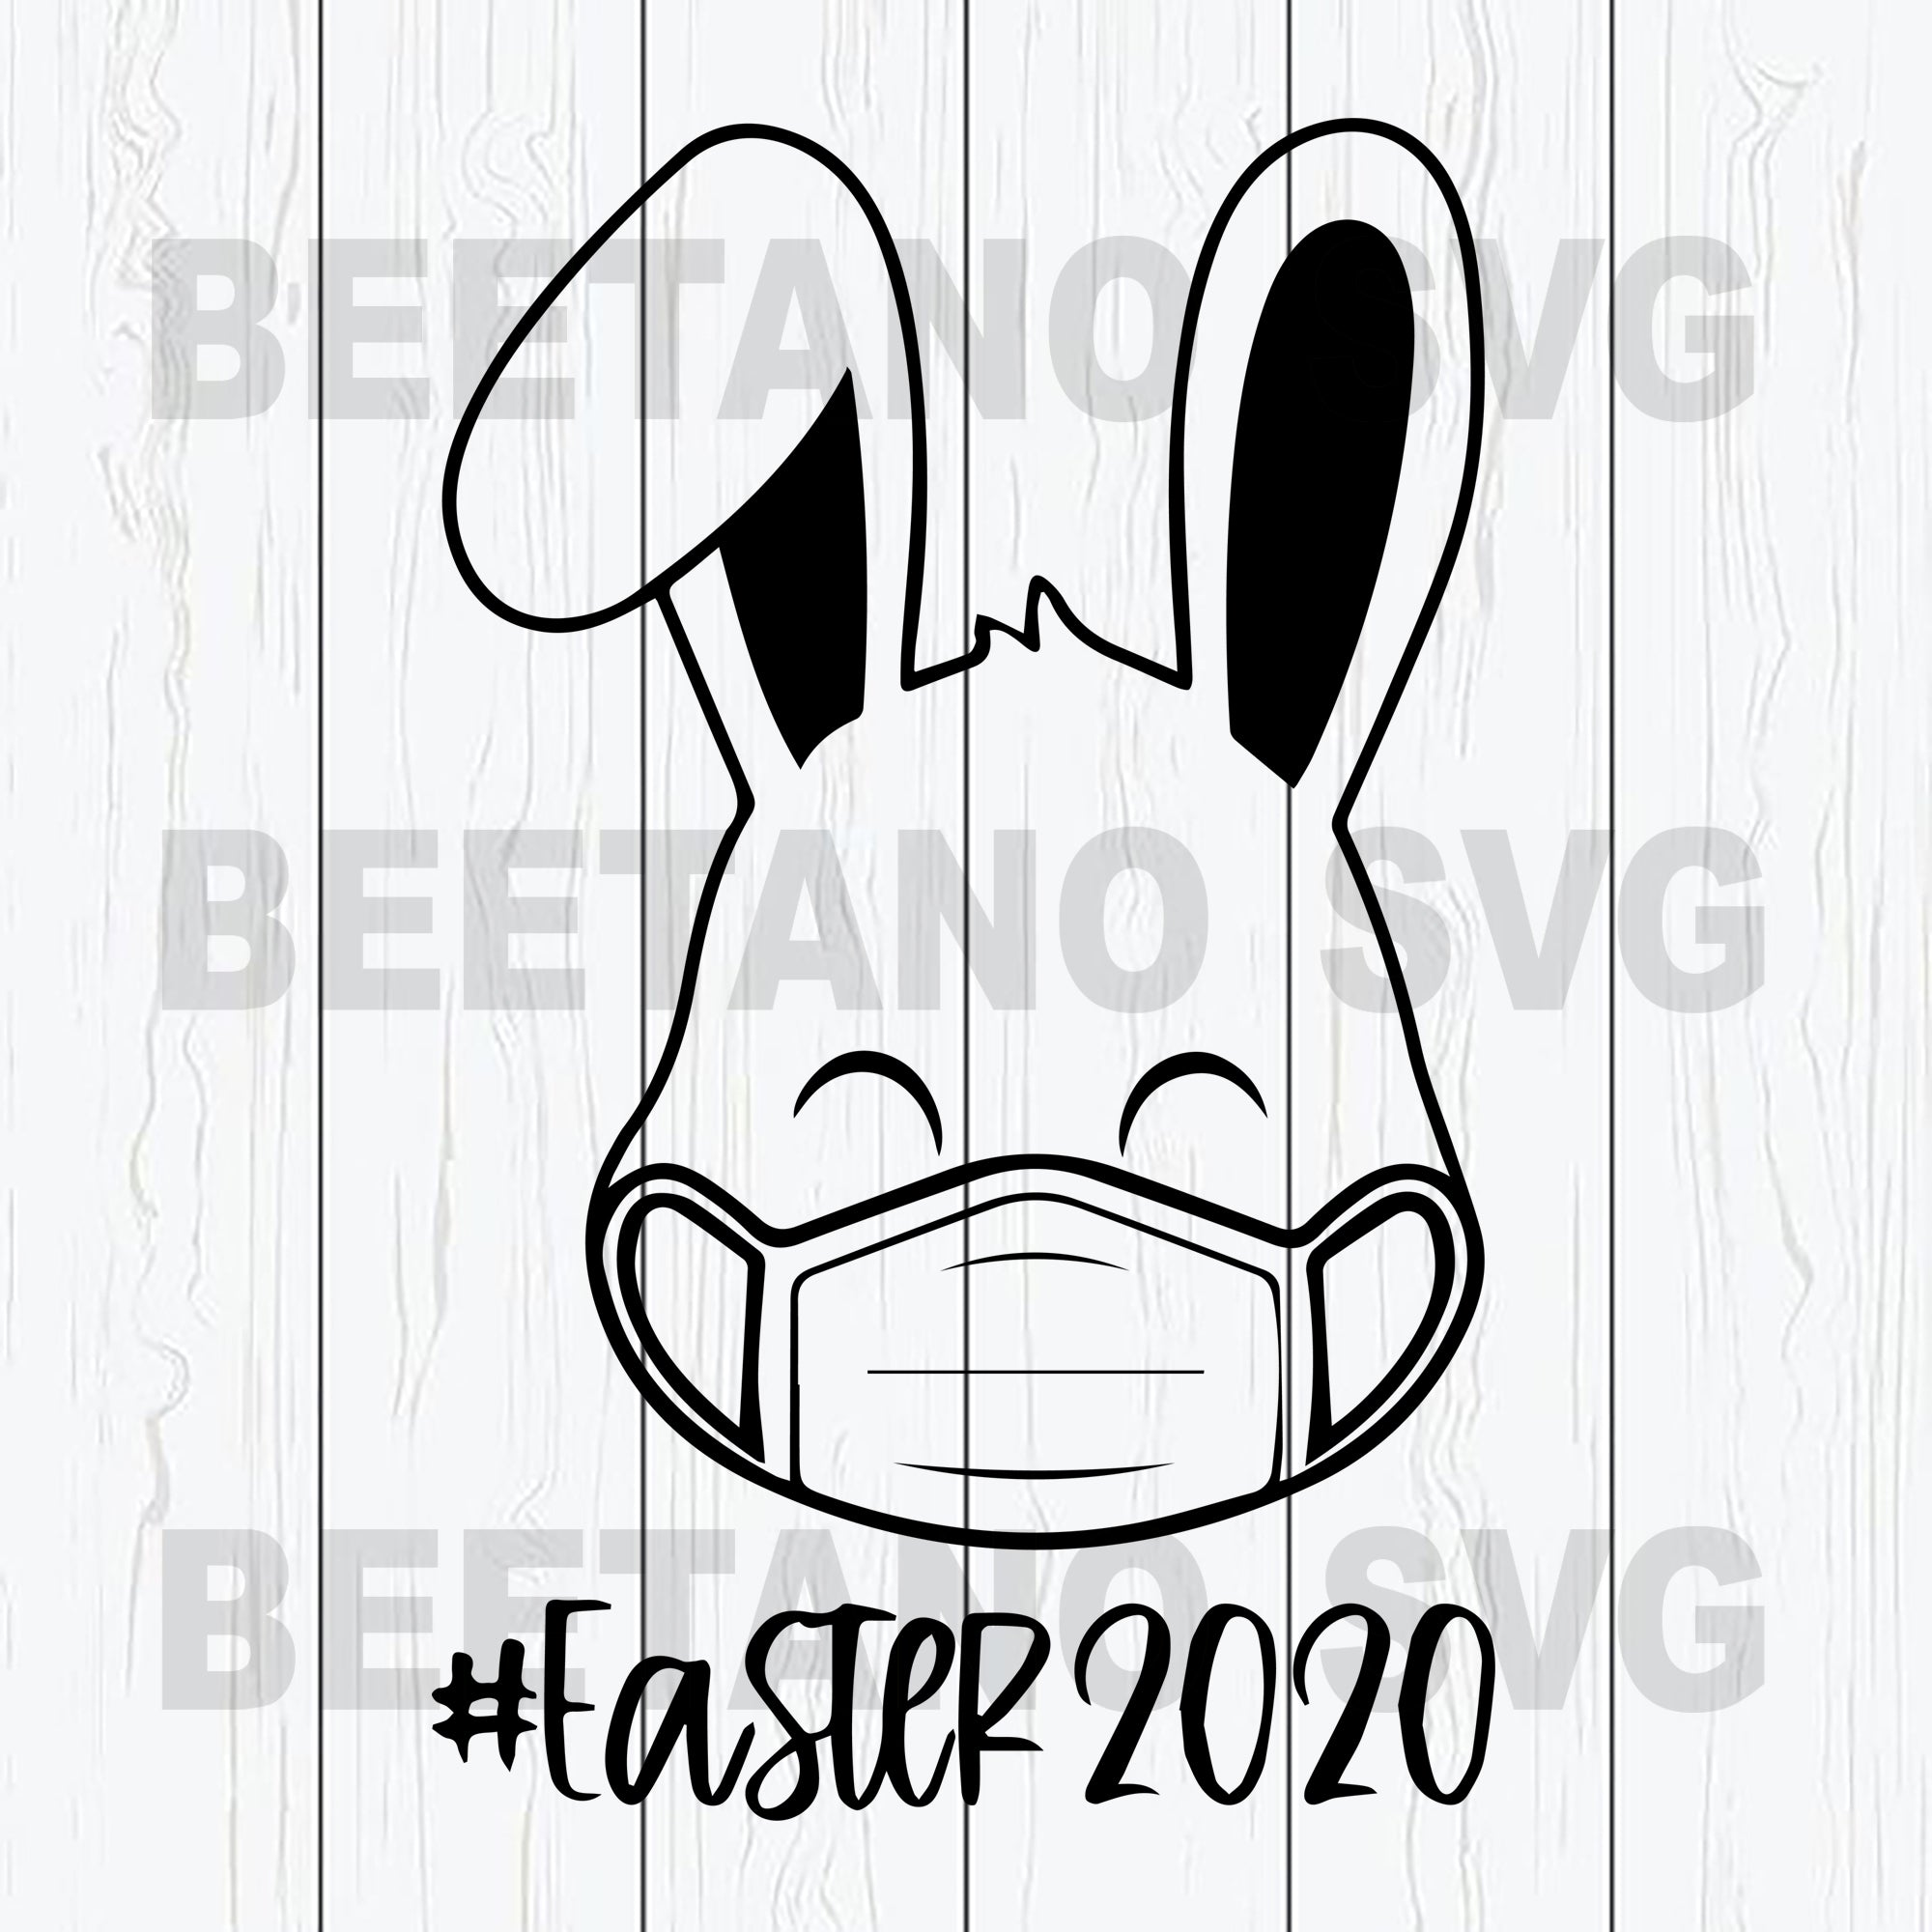 Bunny Face Mask Happy Easter 2020